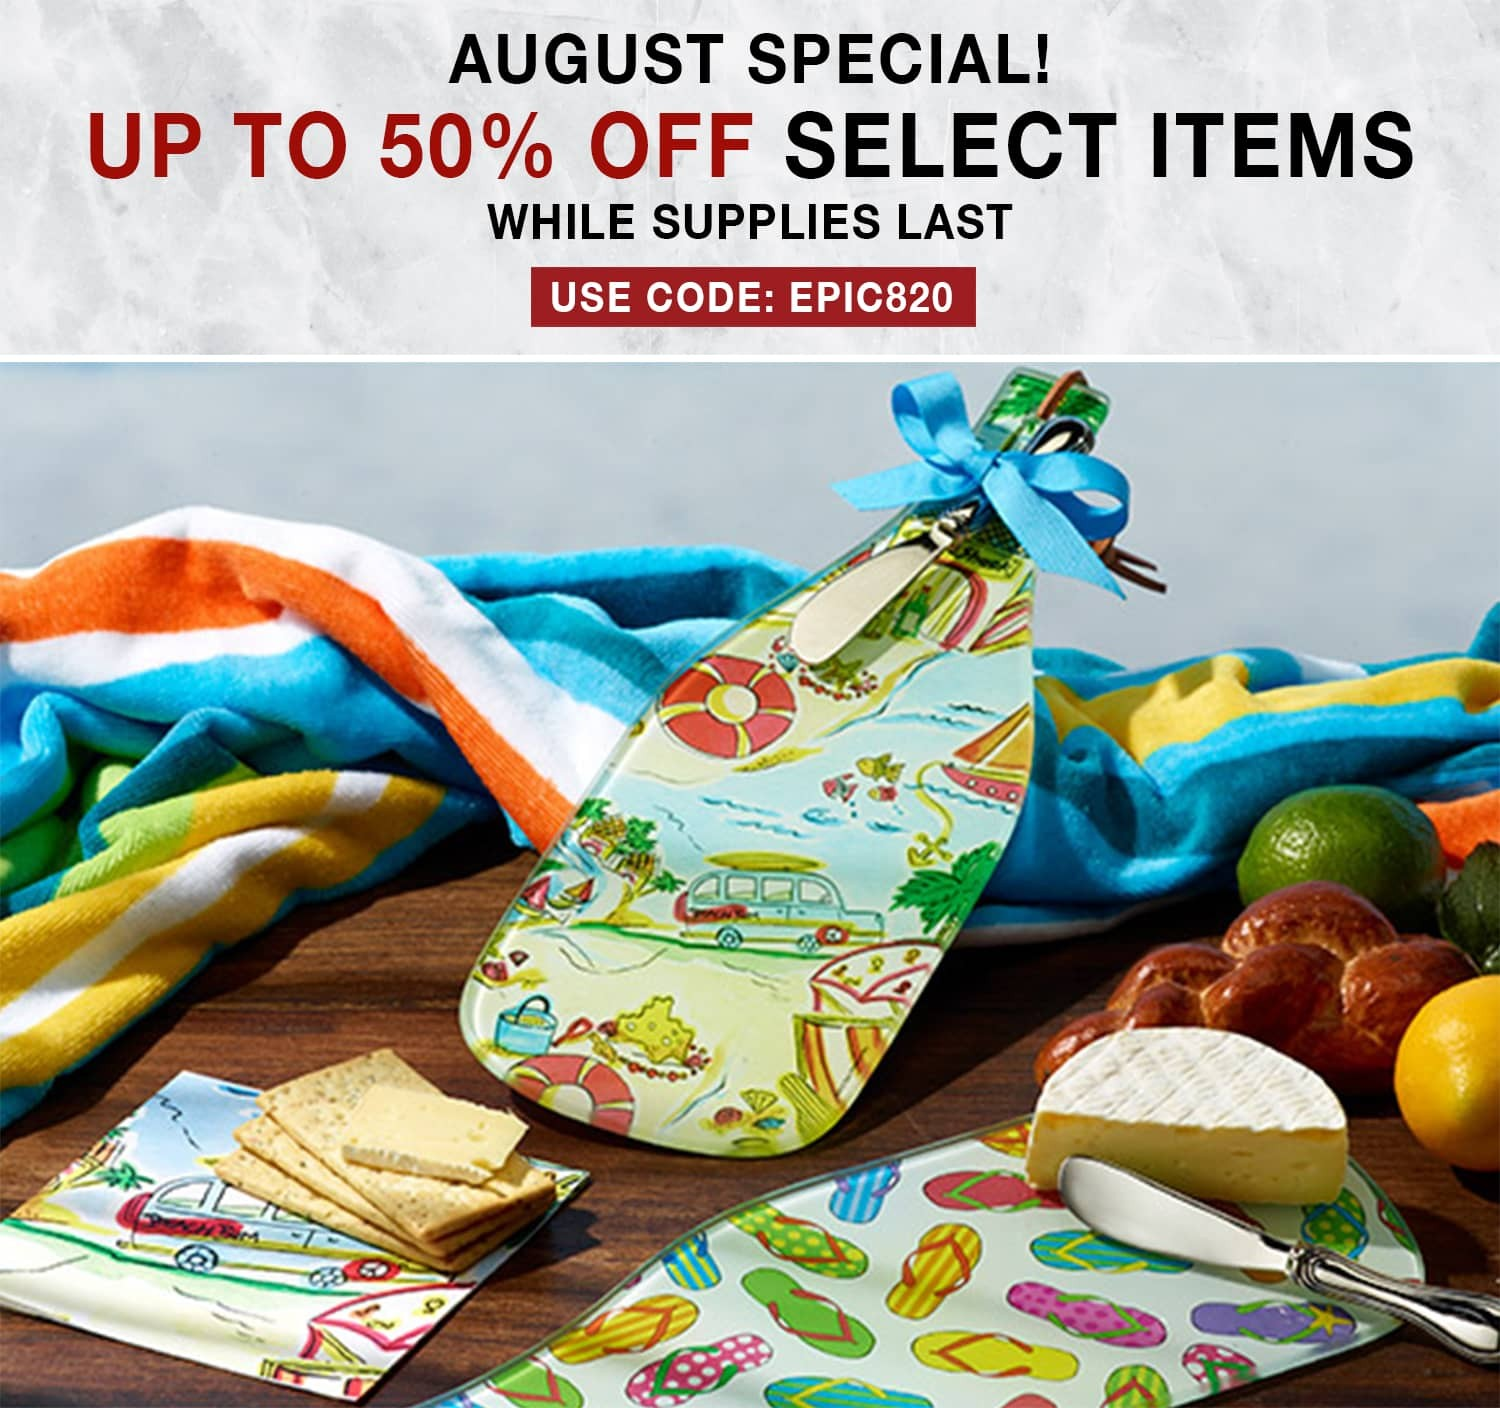 August Special - 50% Off Select Items - While Supplies Last! Use Code: EPIC820